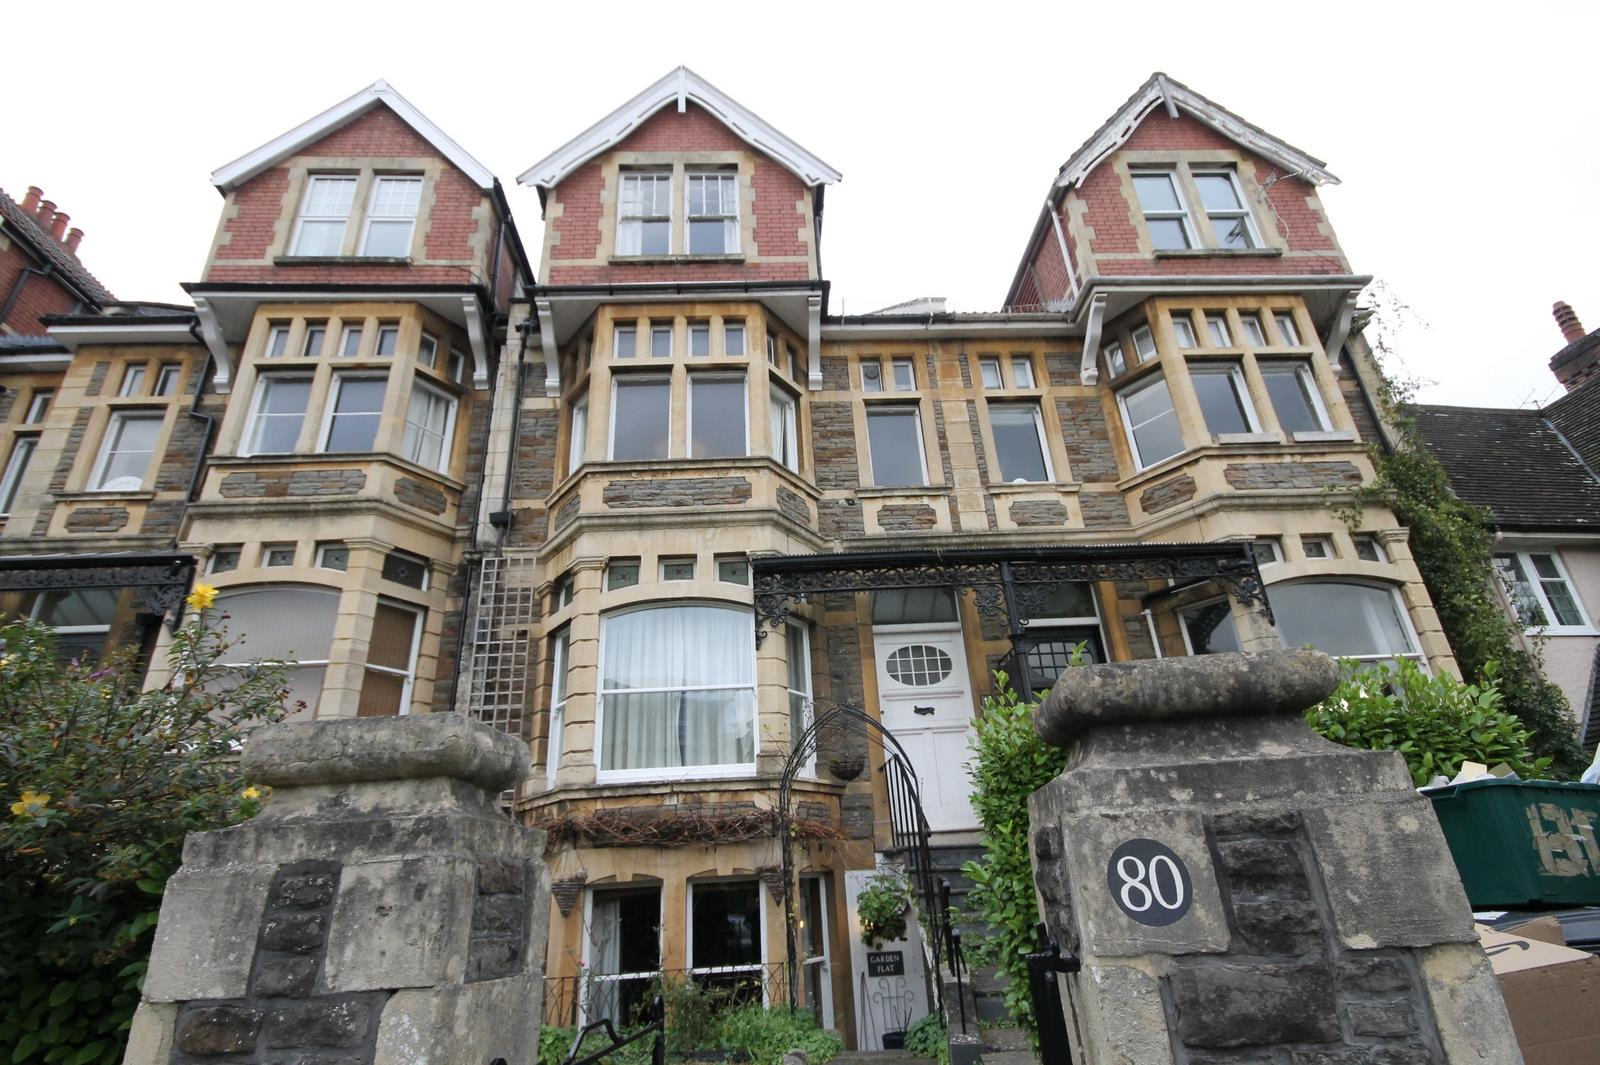 2 bed flat to rent in 80 Pembroke Road, Bristol, BS8